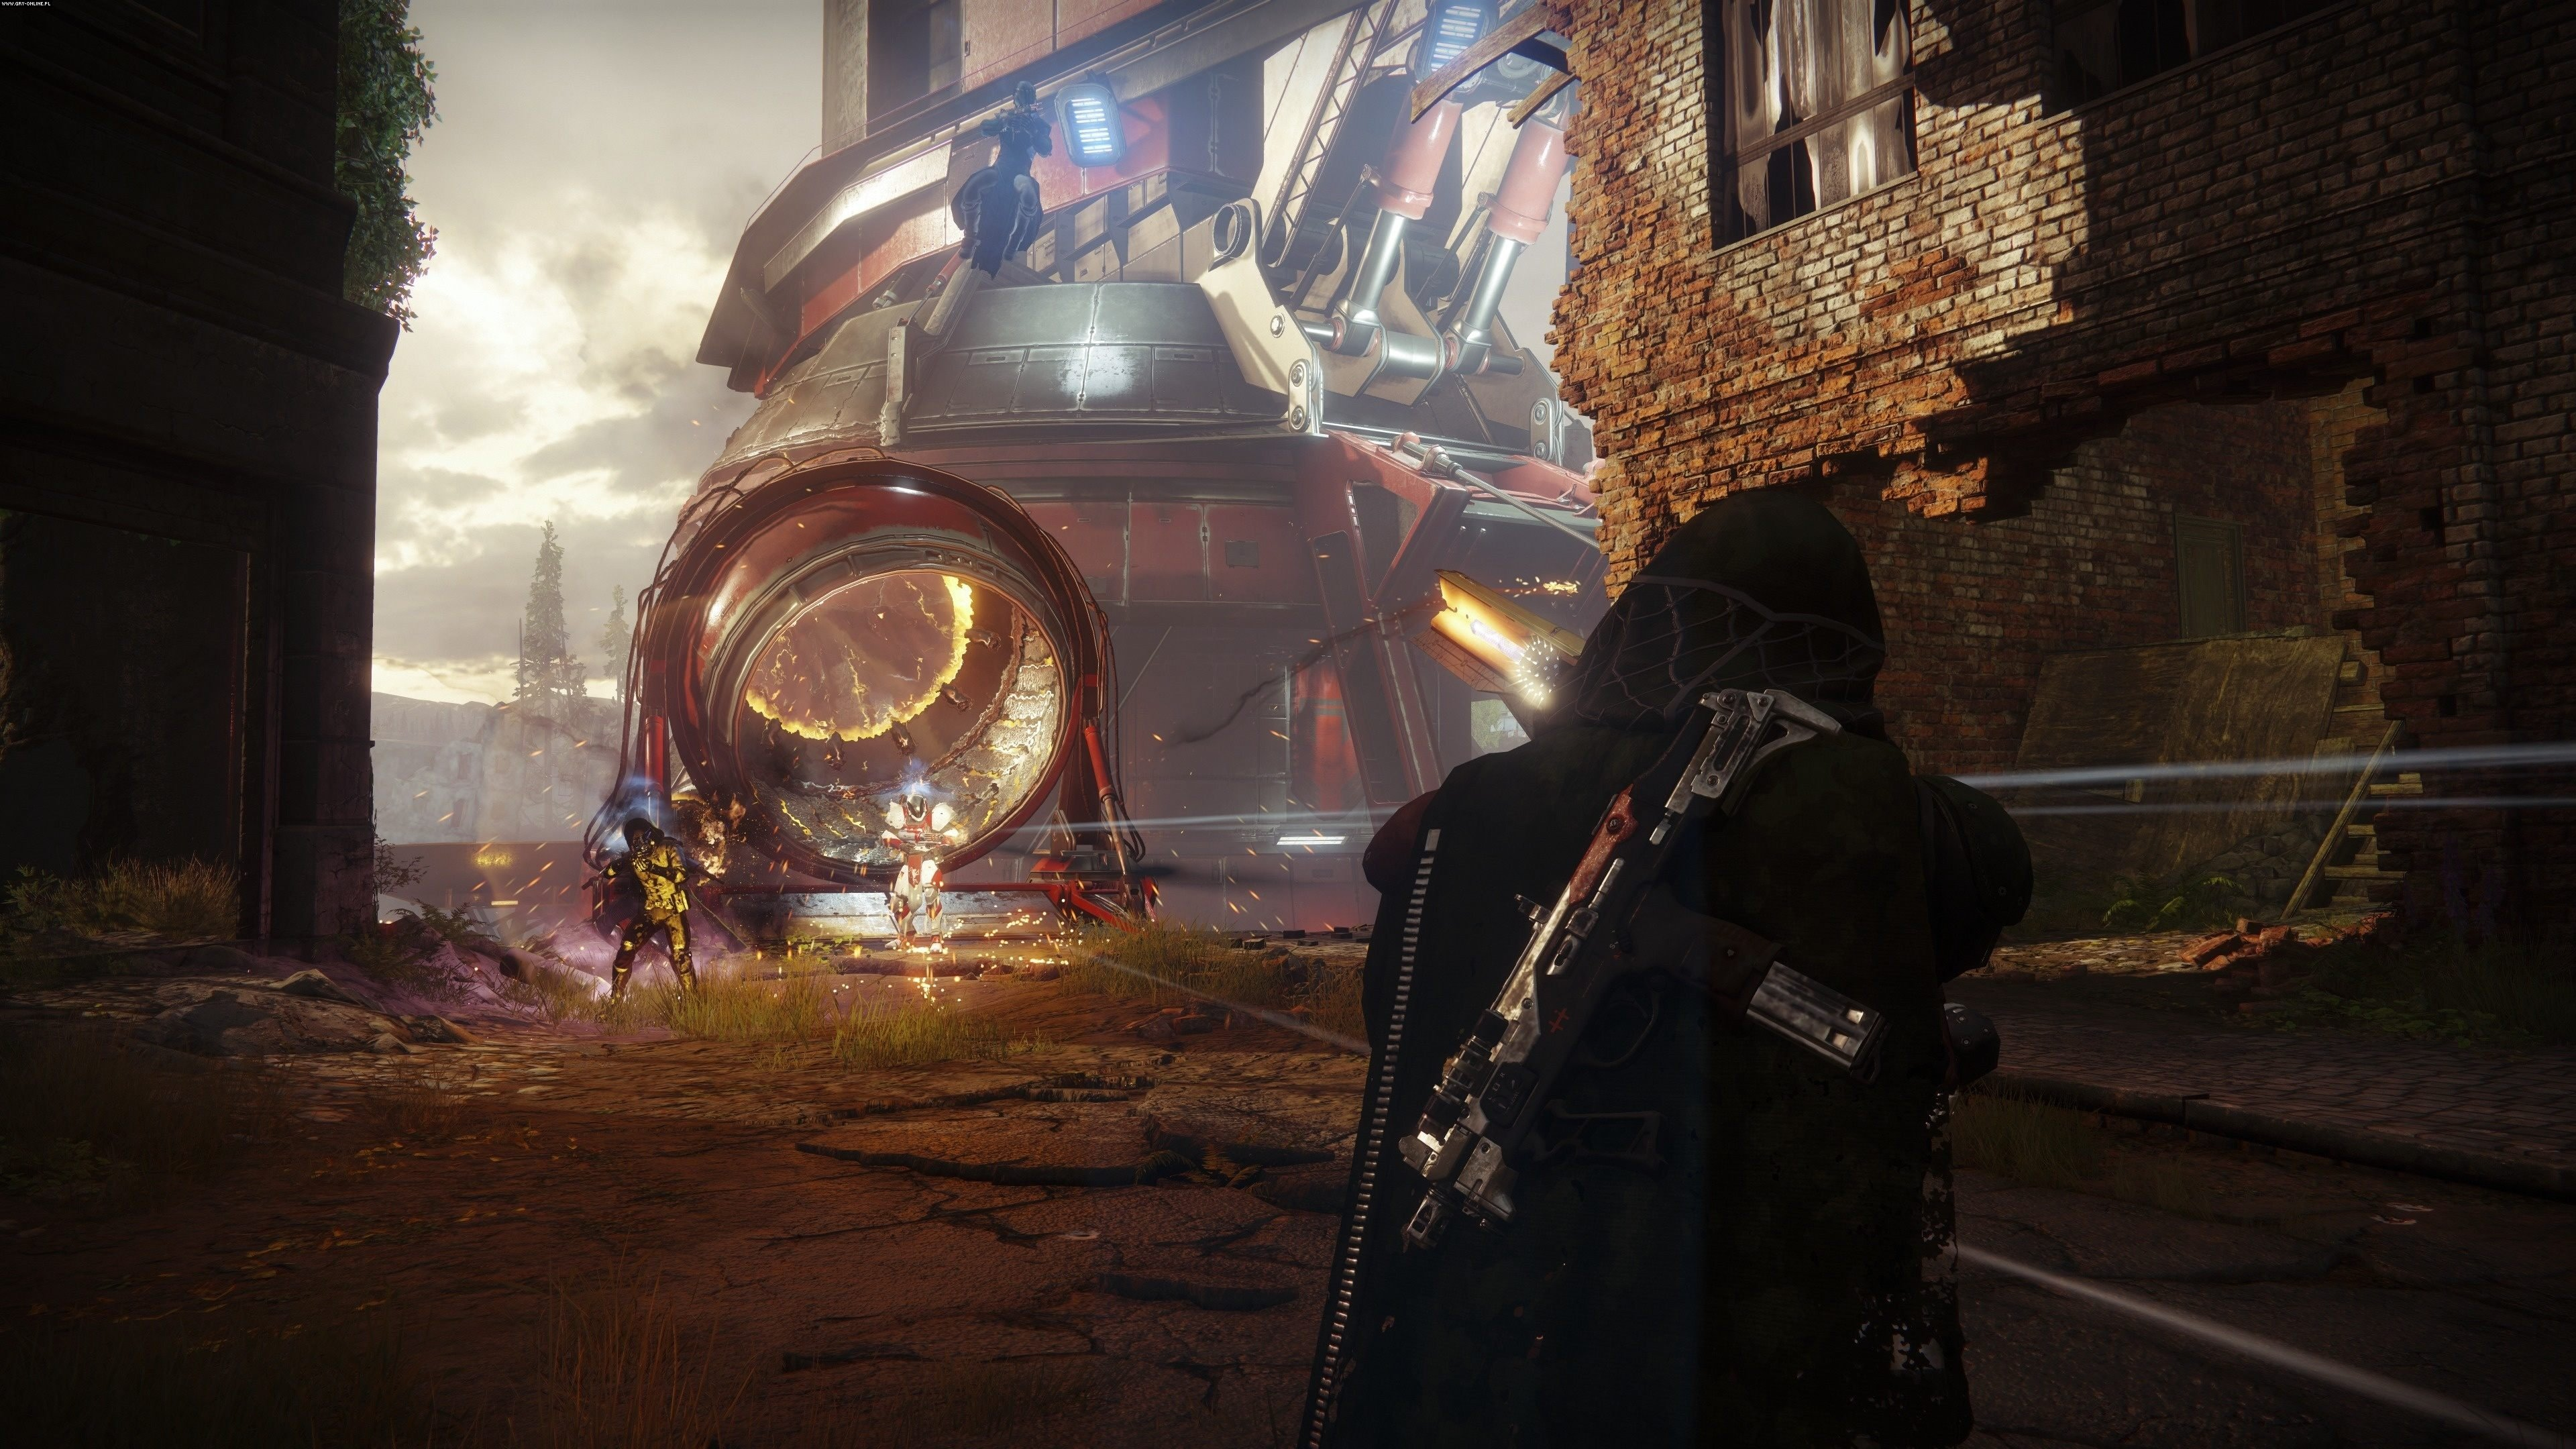 Destiny 2 PC, PS4, XONE Games Image 9/241, Bungie Software, Activision Blizzard